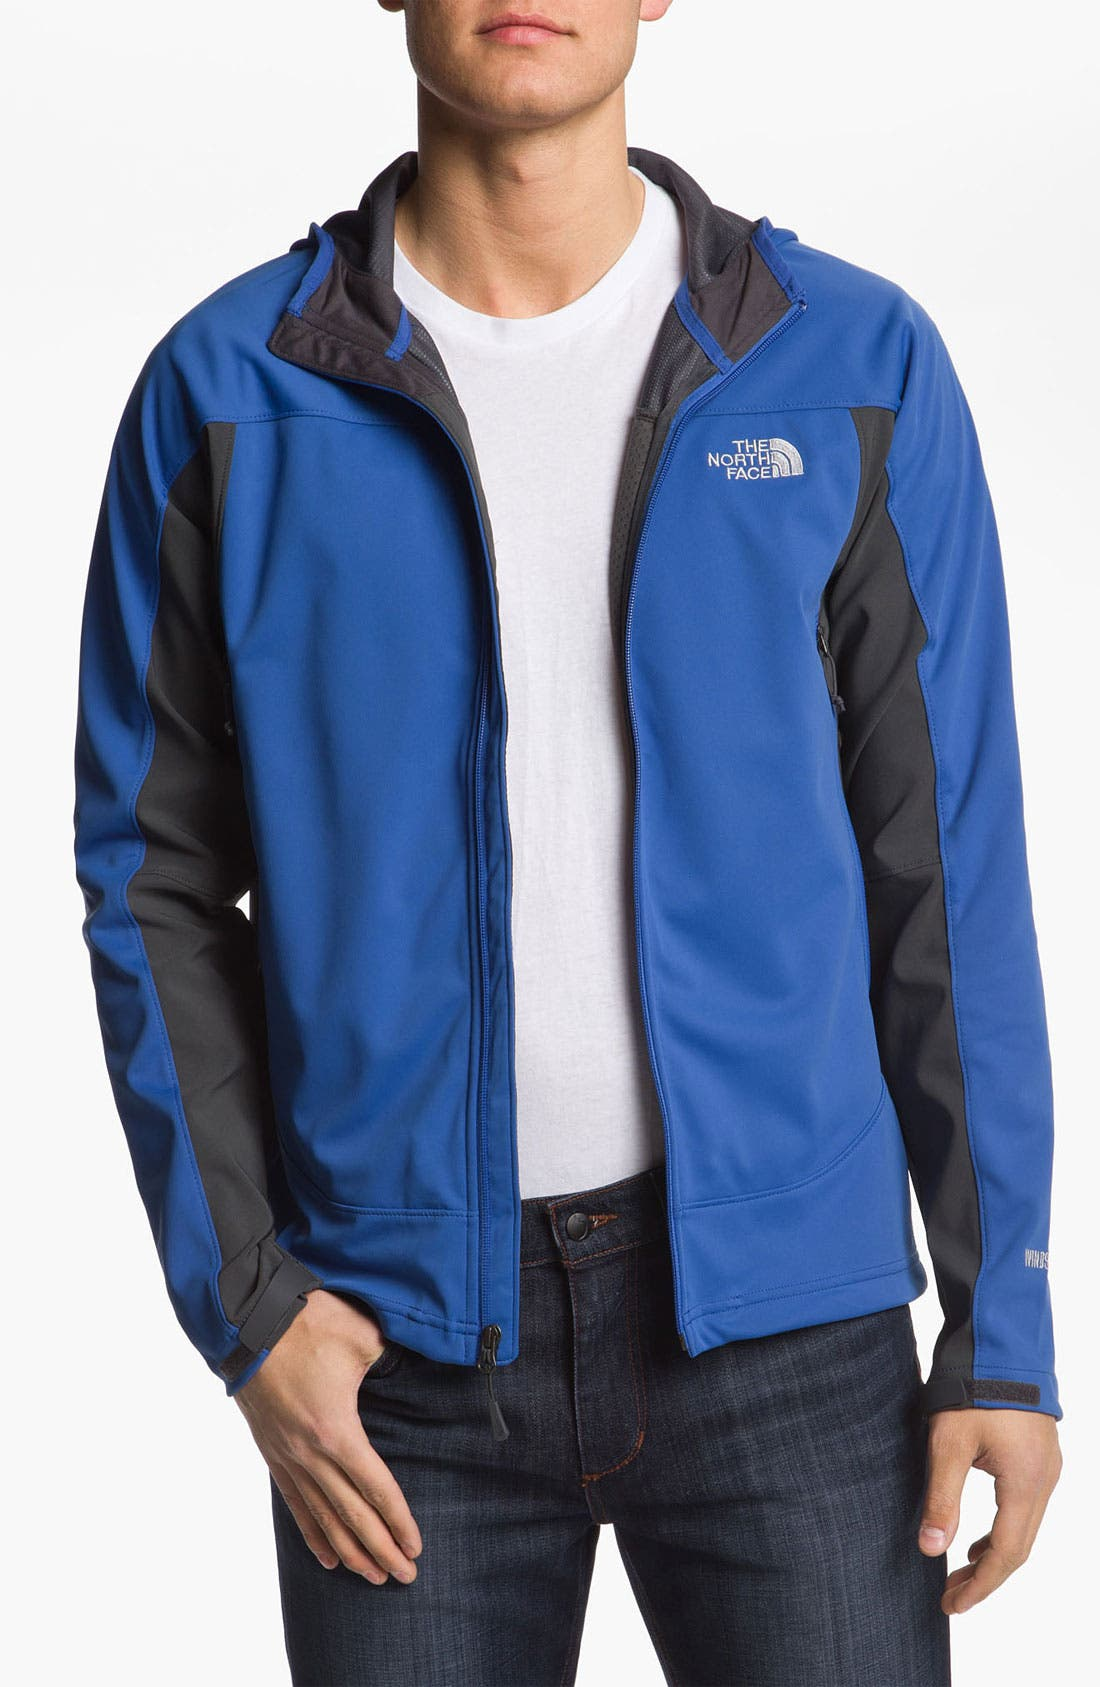 Alternate Image 1 Selected - The North Face 'Resolve' Jacket